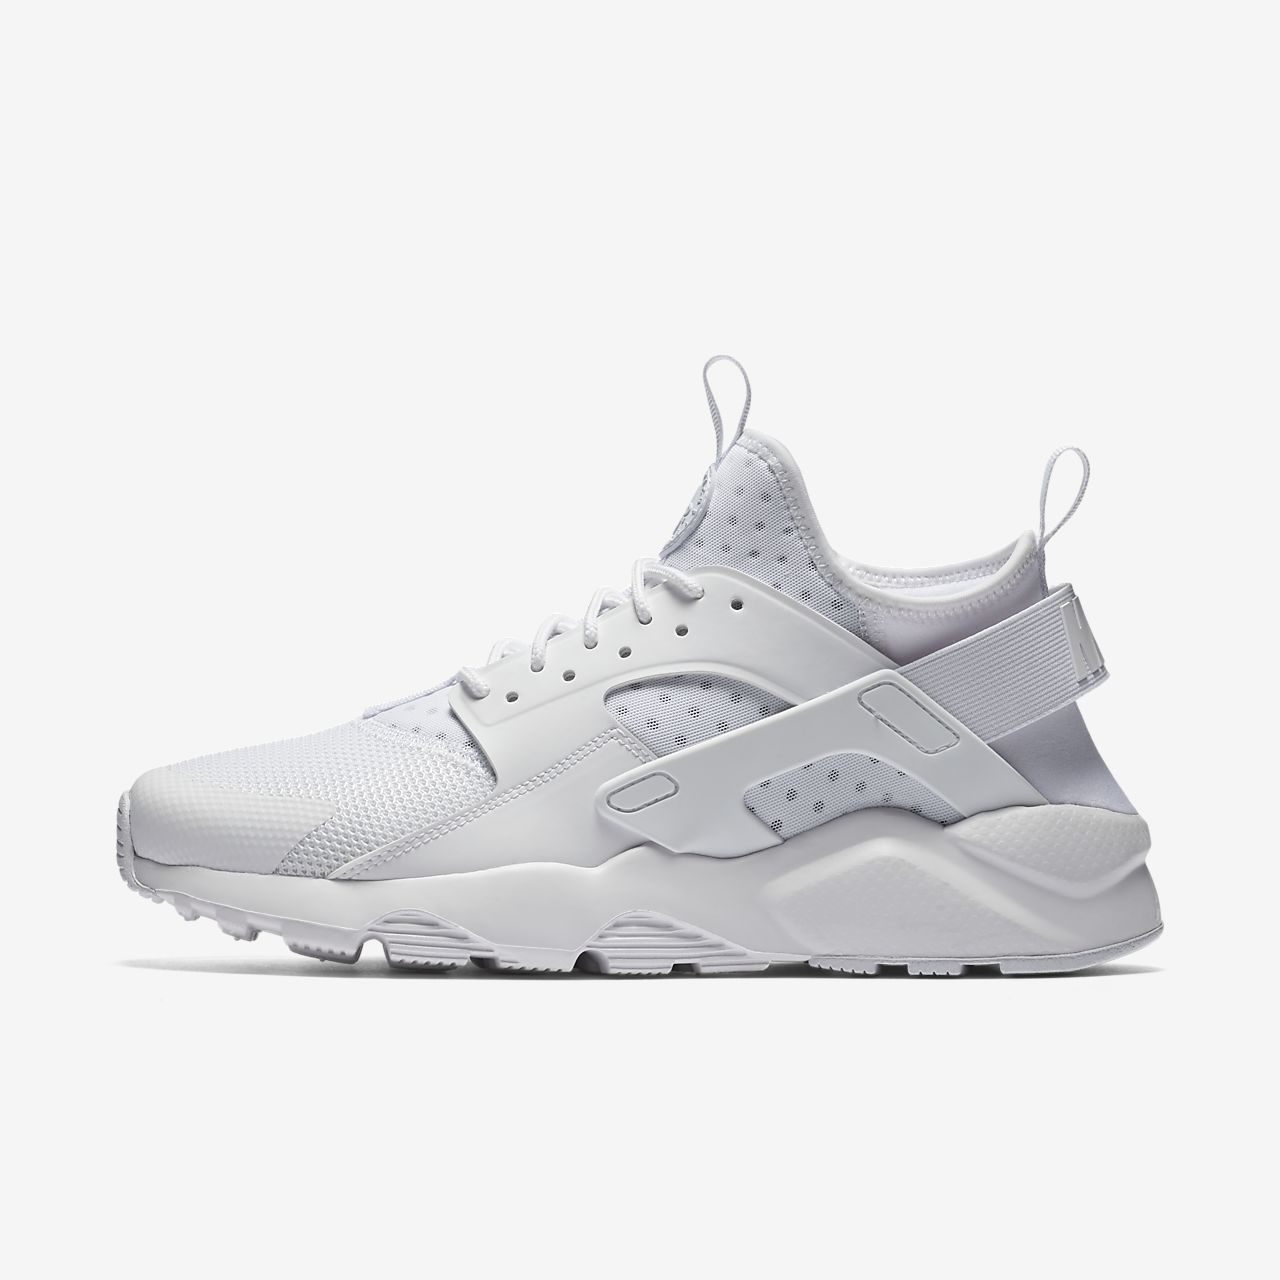 90923039e8f7 Nike Air Huarache Ultra Men s Shoe. Nike.com CA